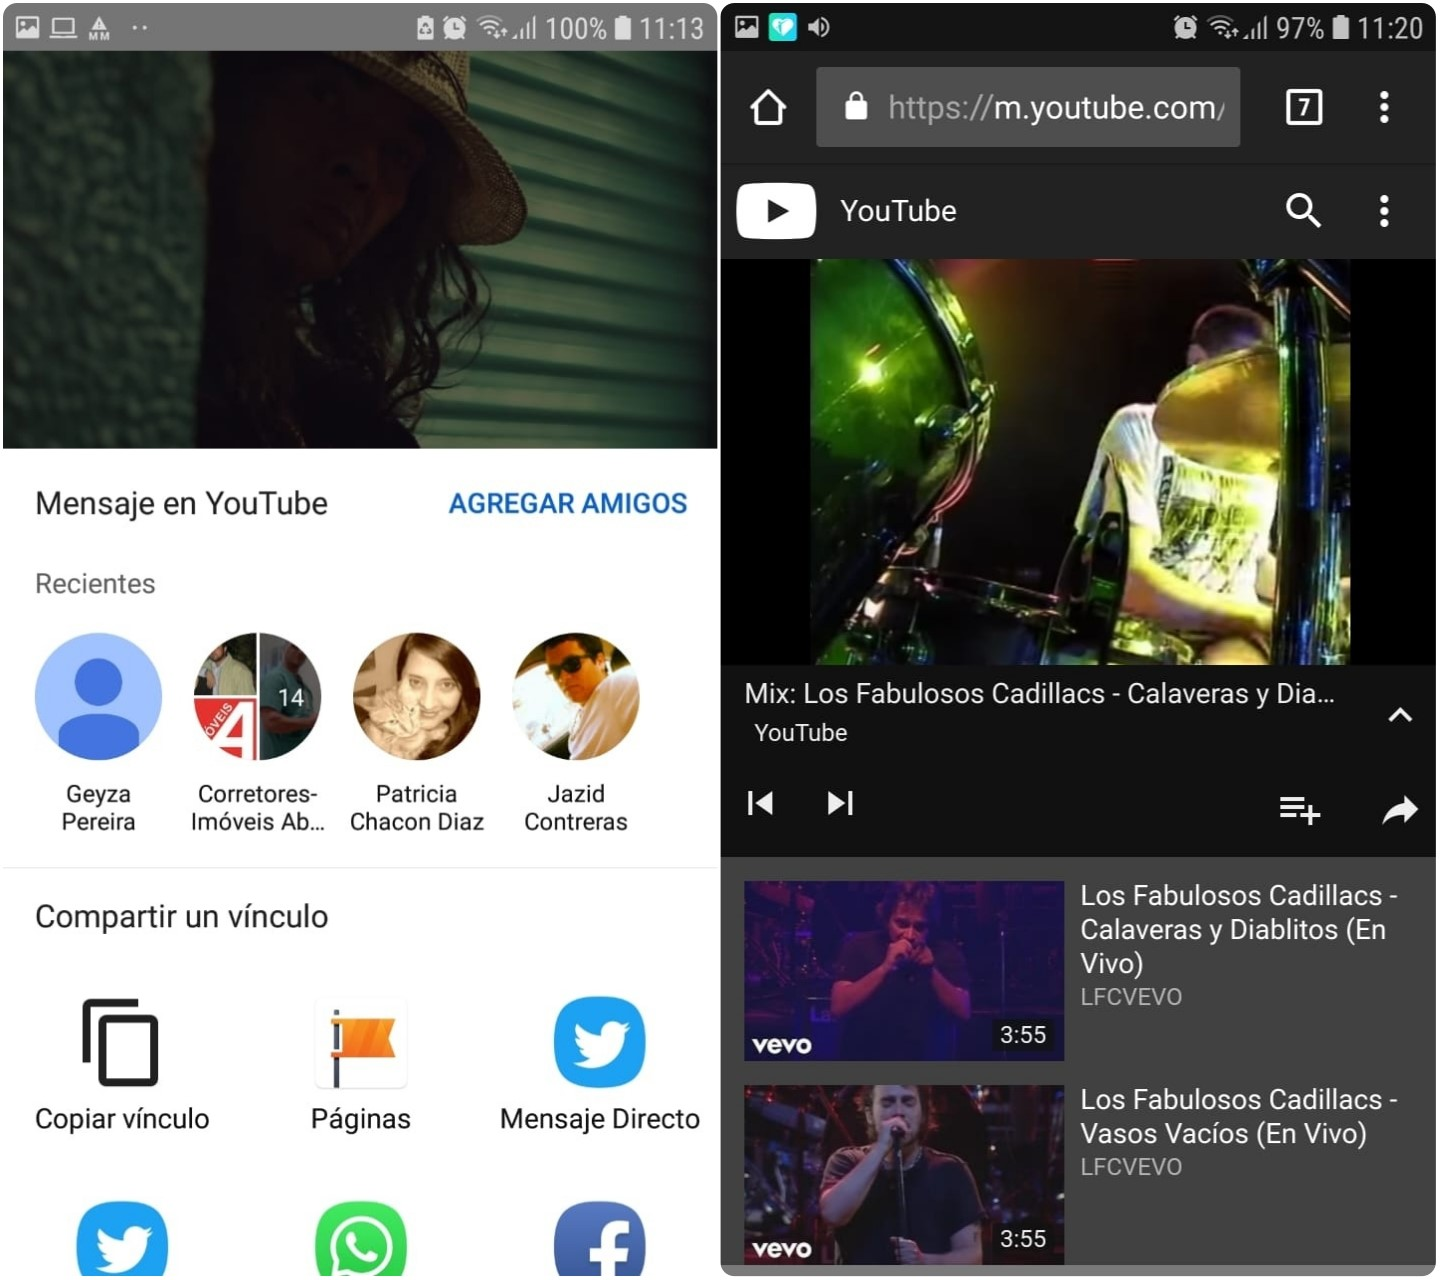 Escuchar videos de YouTube pantala apagada